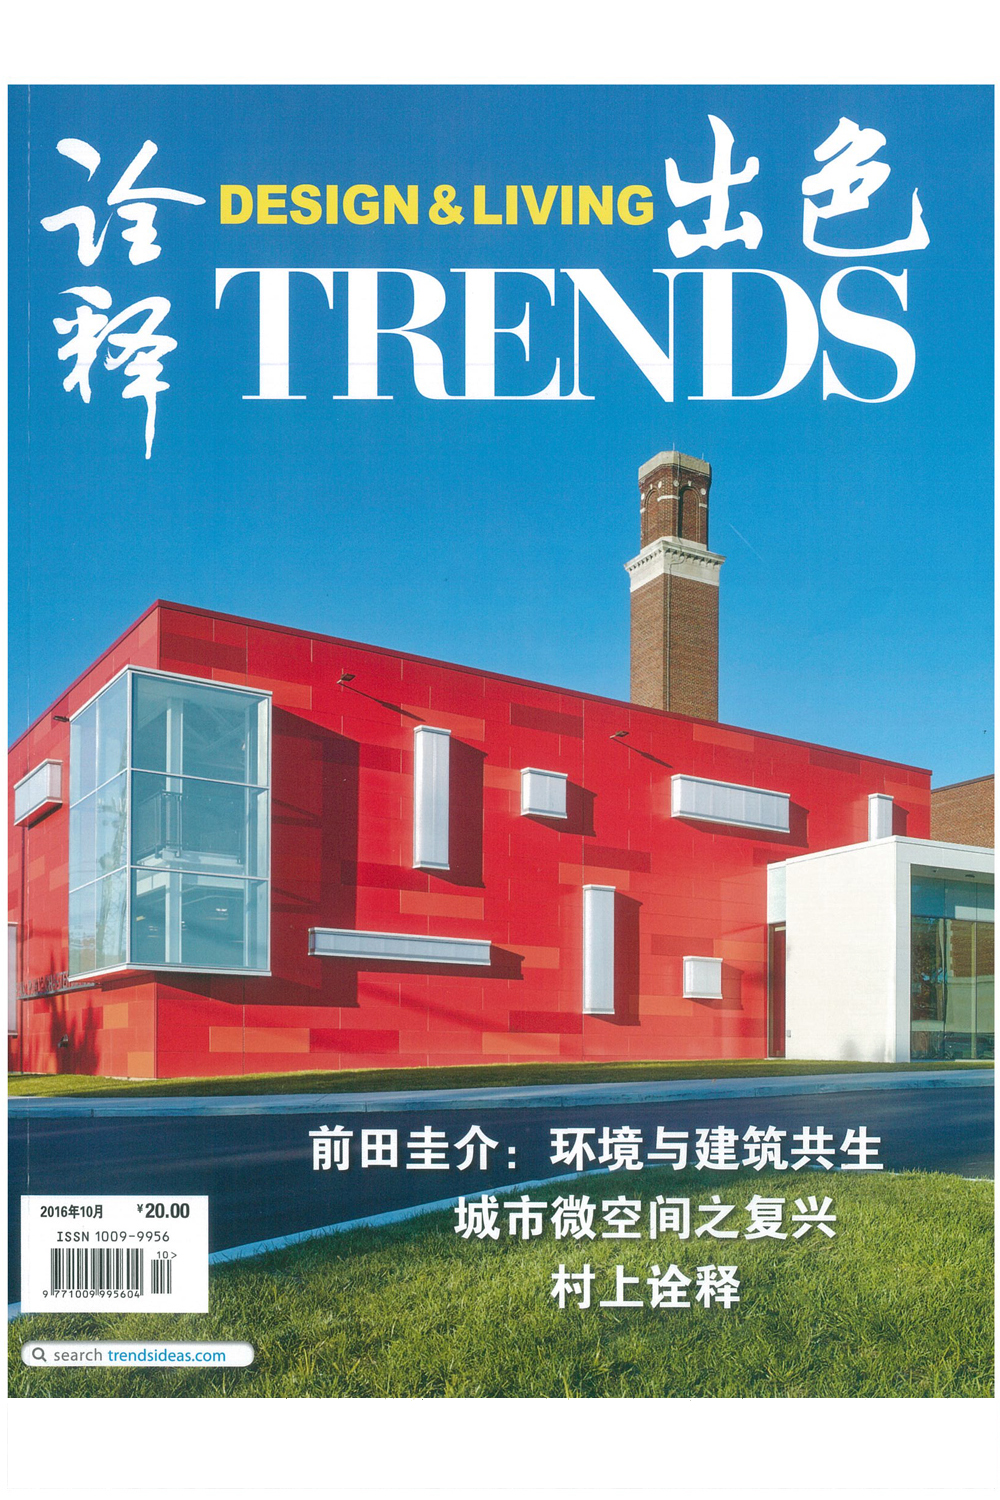 Trends, Linehouse, October 2016